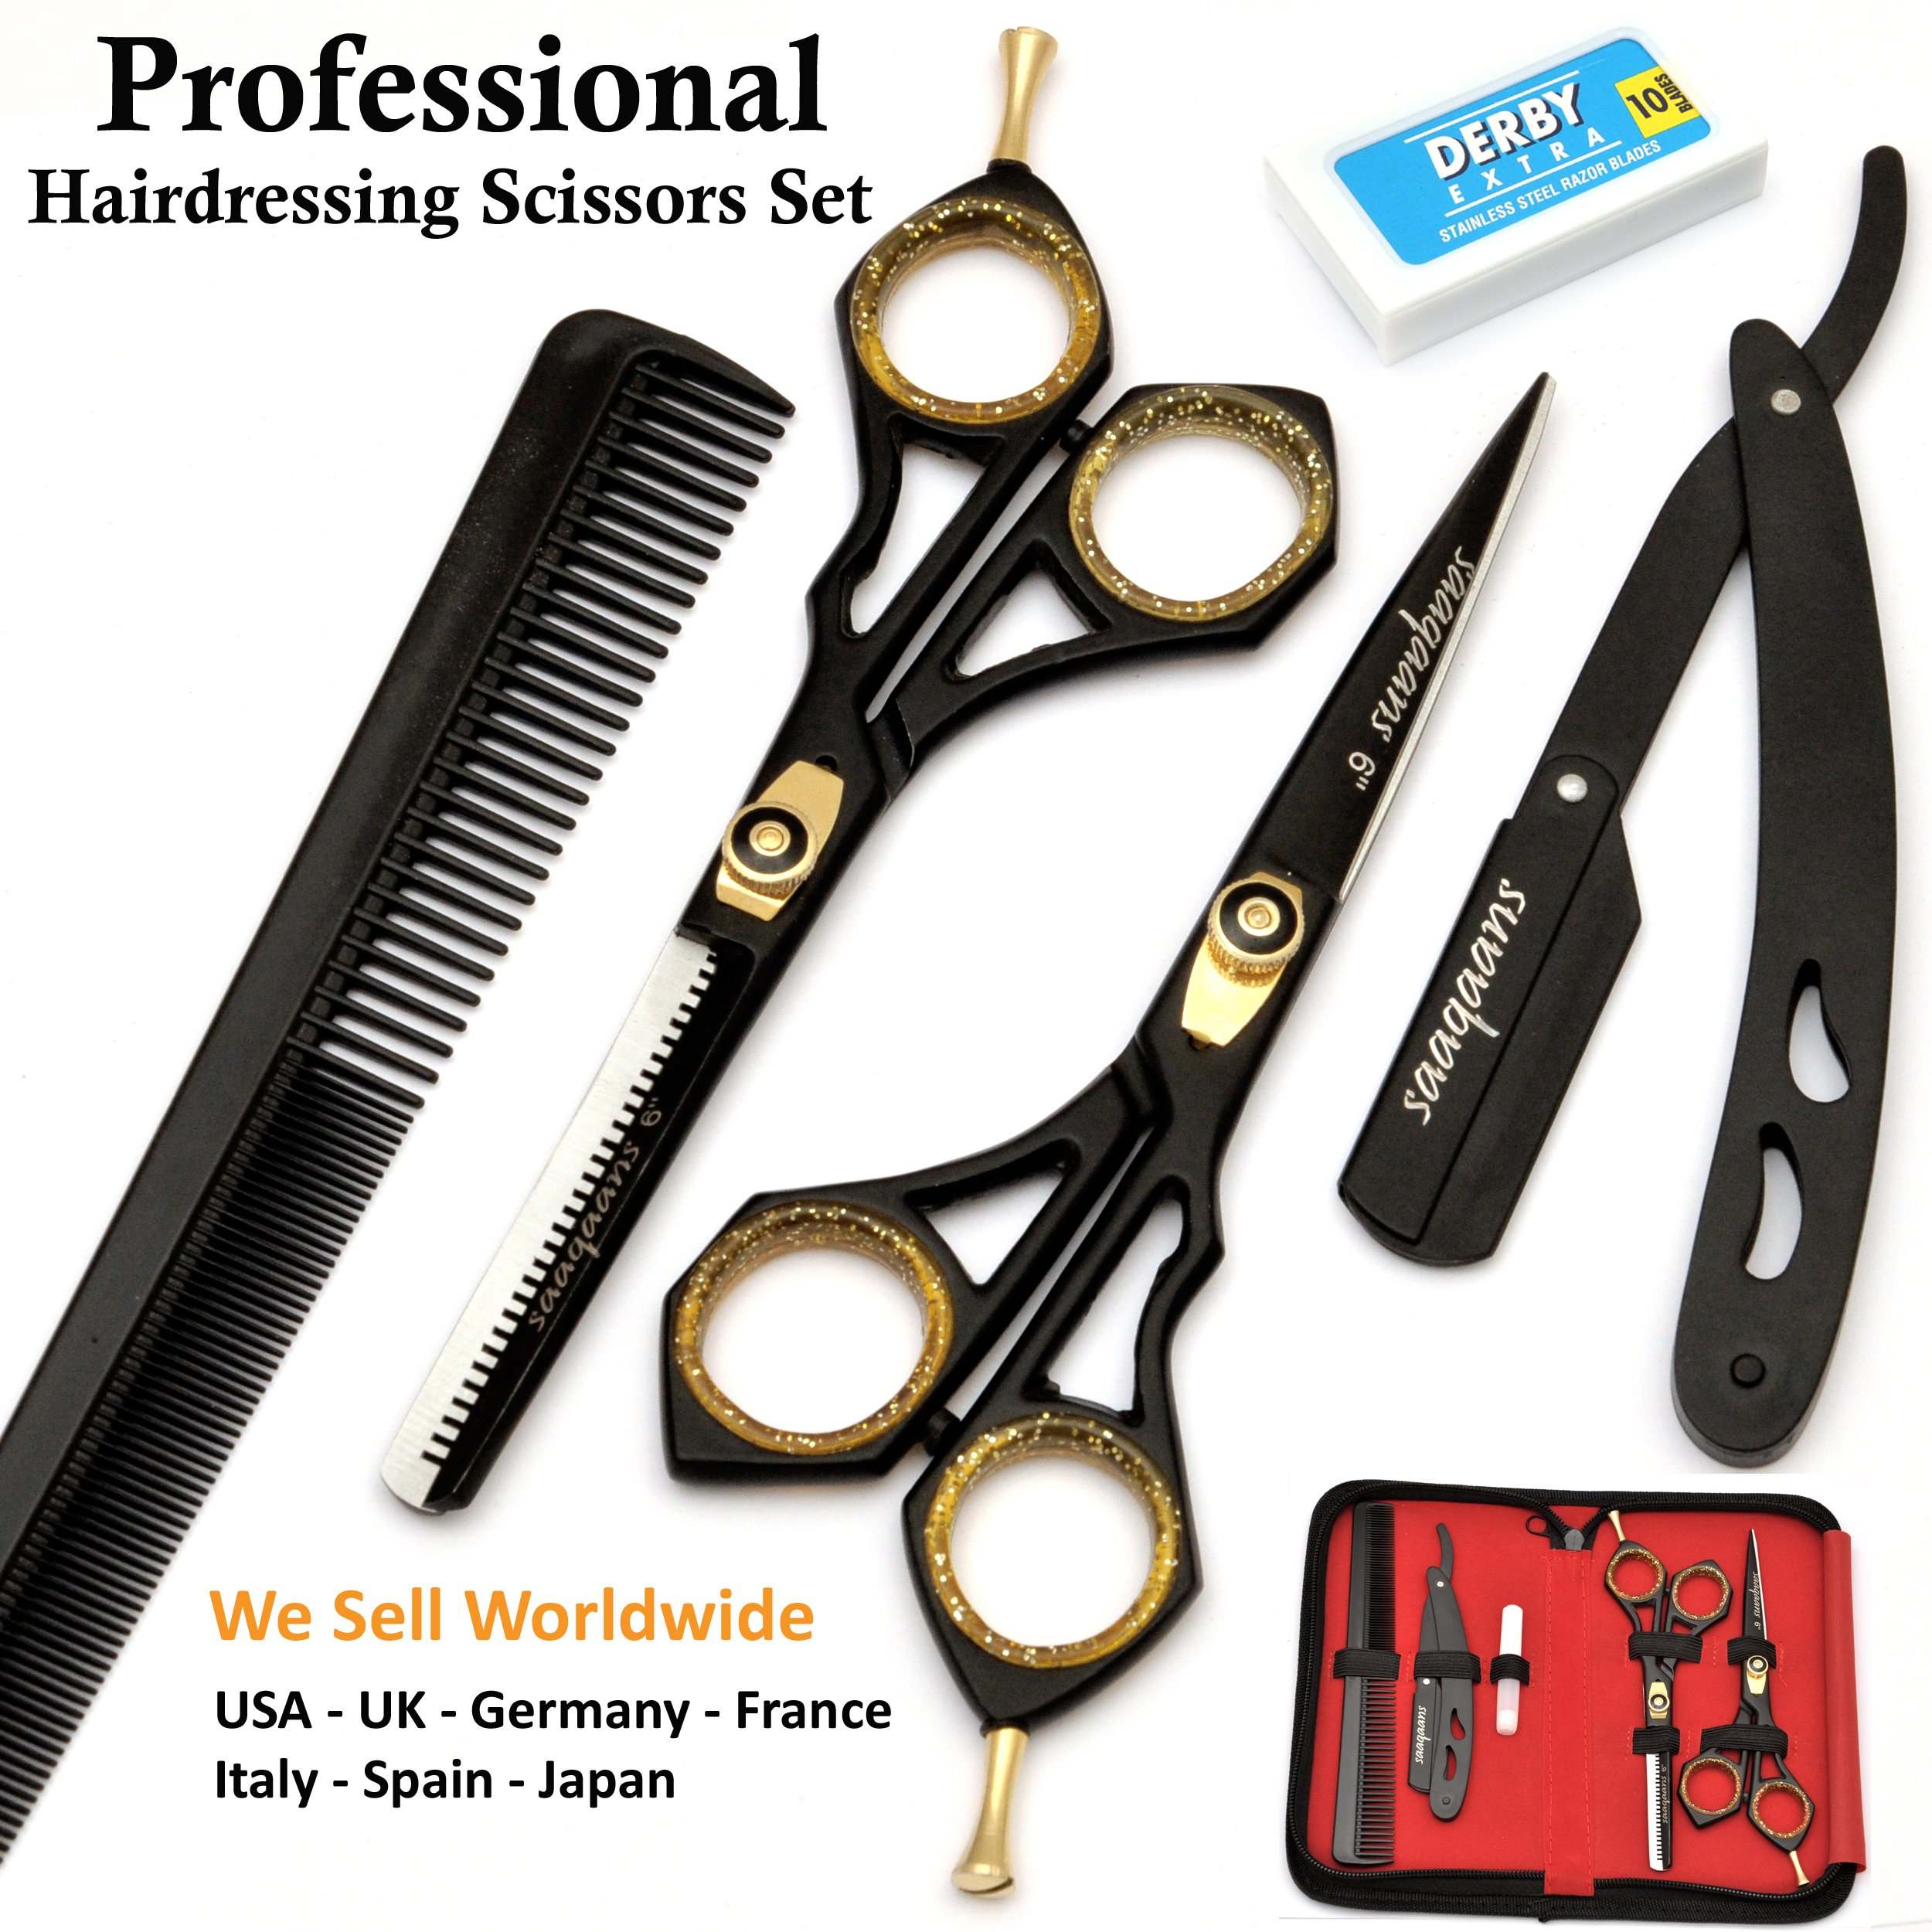 Saaqaans SQKIT Professional Hairdressing Scissors Set - Package includes Barber Scissor, Thinning Shear, Straight Razor, 10 x Derby Double Edge Blades and Hair Comb in Stylish Black Scissors Case